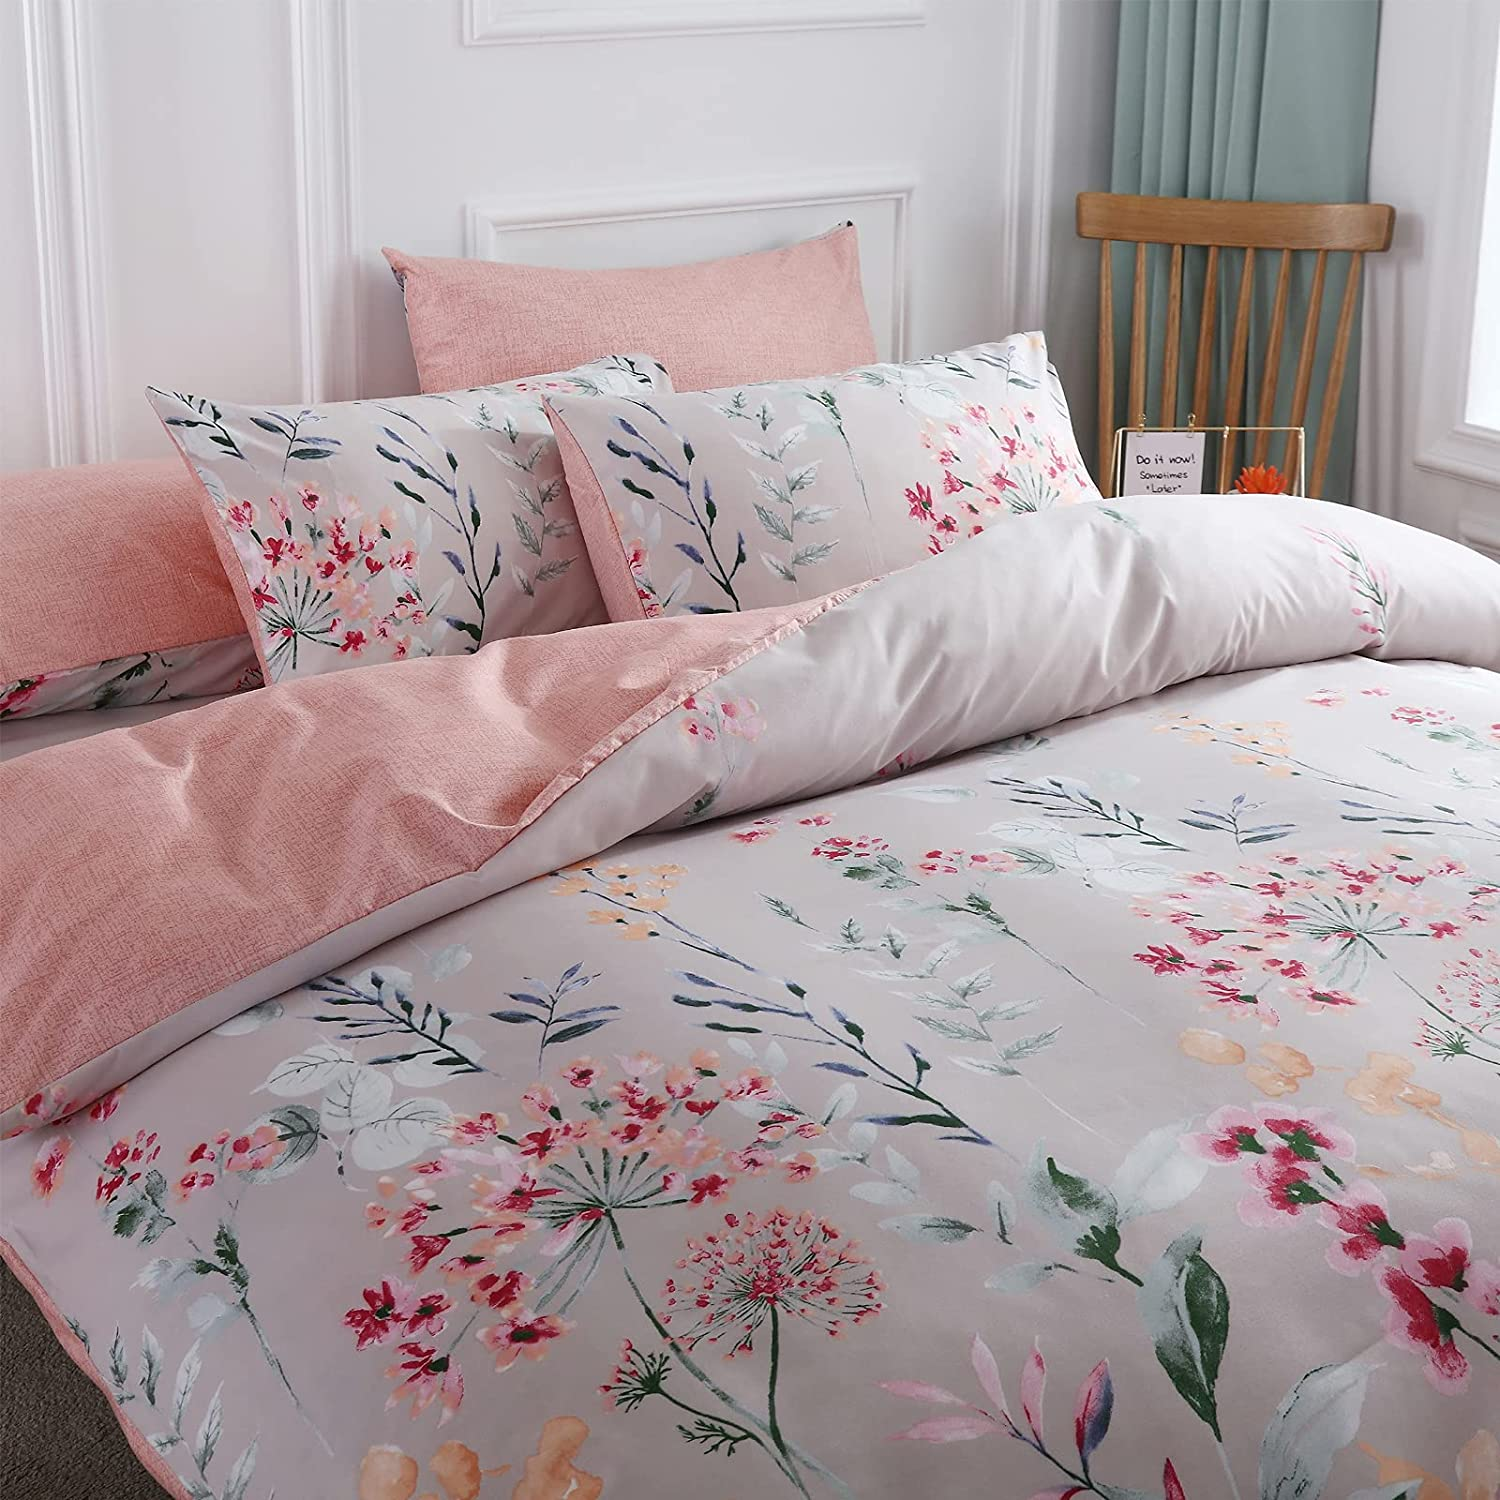 ESOVIO Botanical Leaves Pink Reversible Floral Co Duvet Fixed price for sale Charlotte Mall Colorful